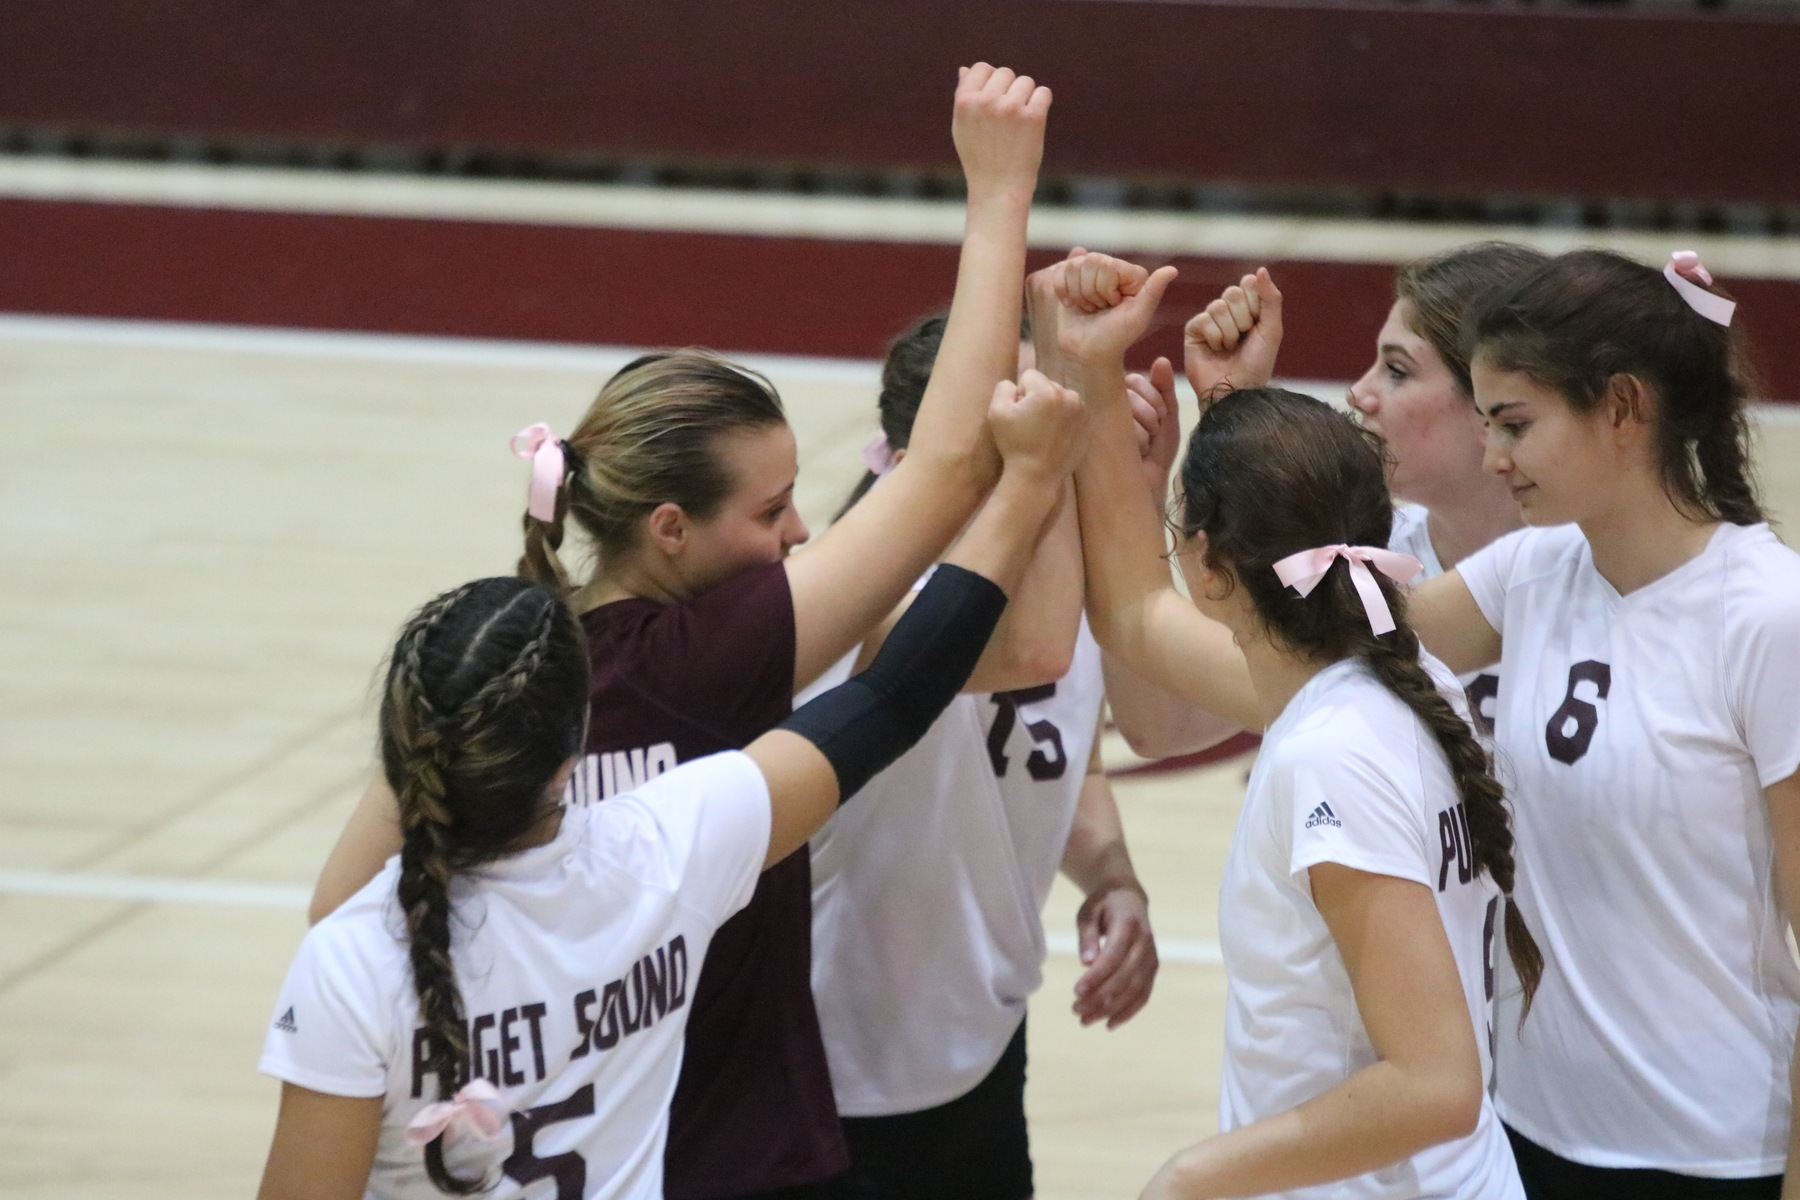 Loggers fall in straight sets against George Fox